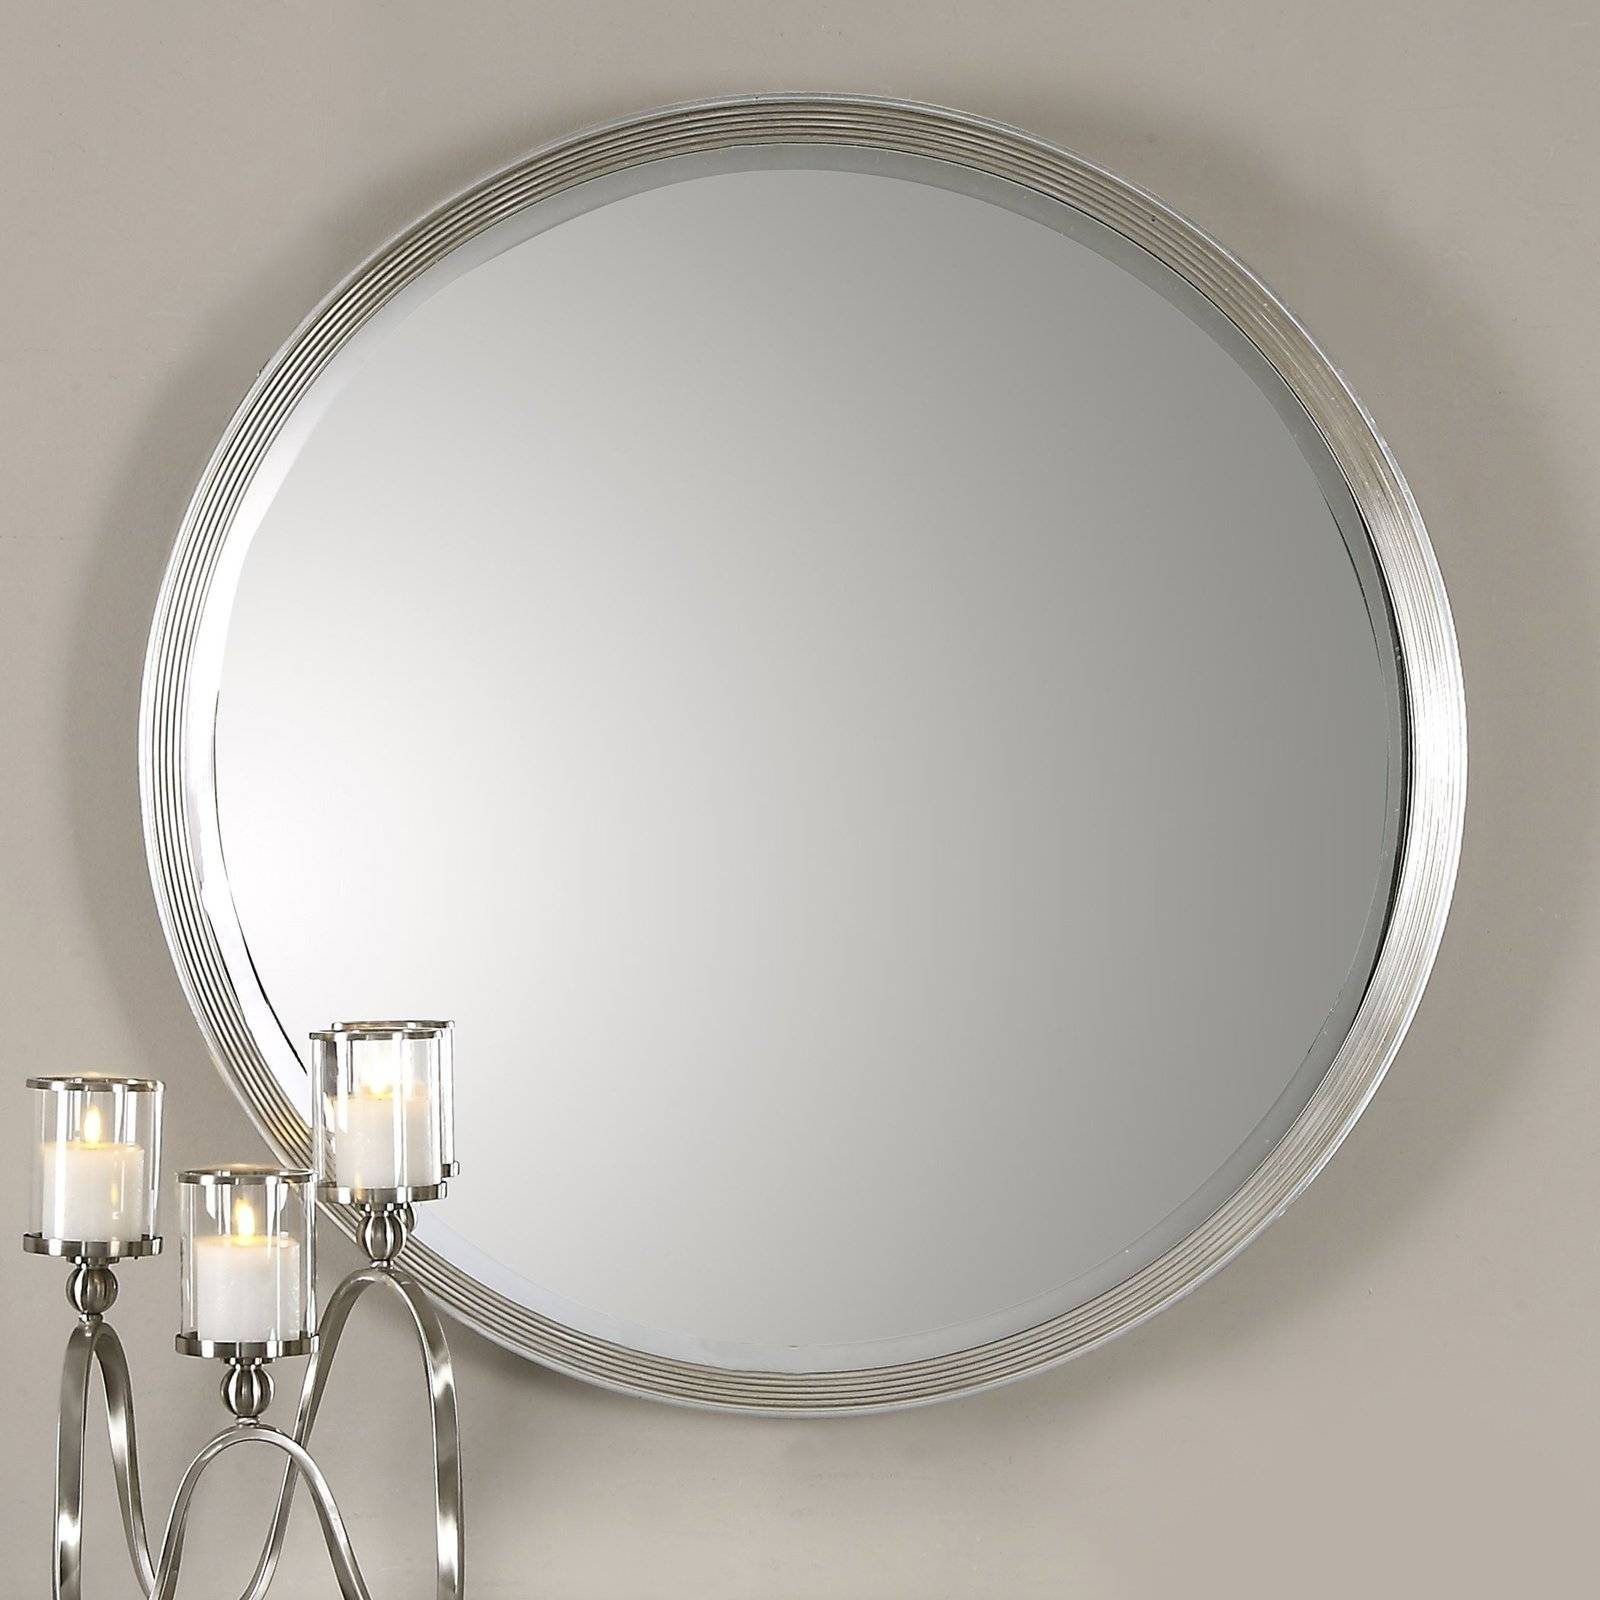 Uttermost Stefania Beaded Round Mirror | Hayneedle regarding Round Silver Mirrors (Image 15 of 15)